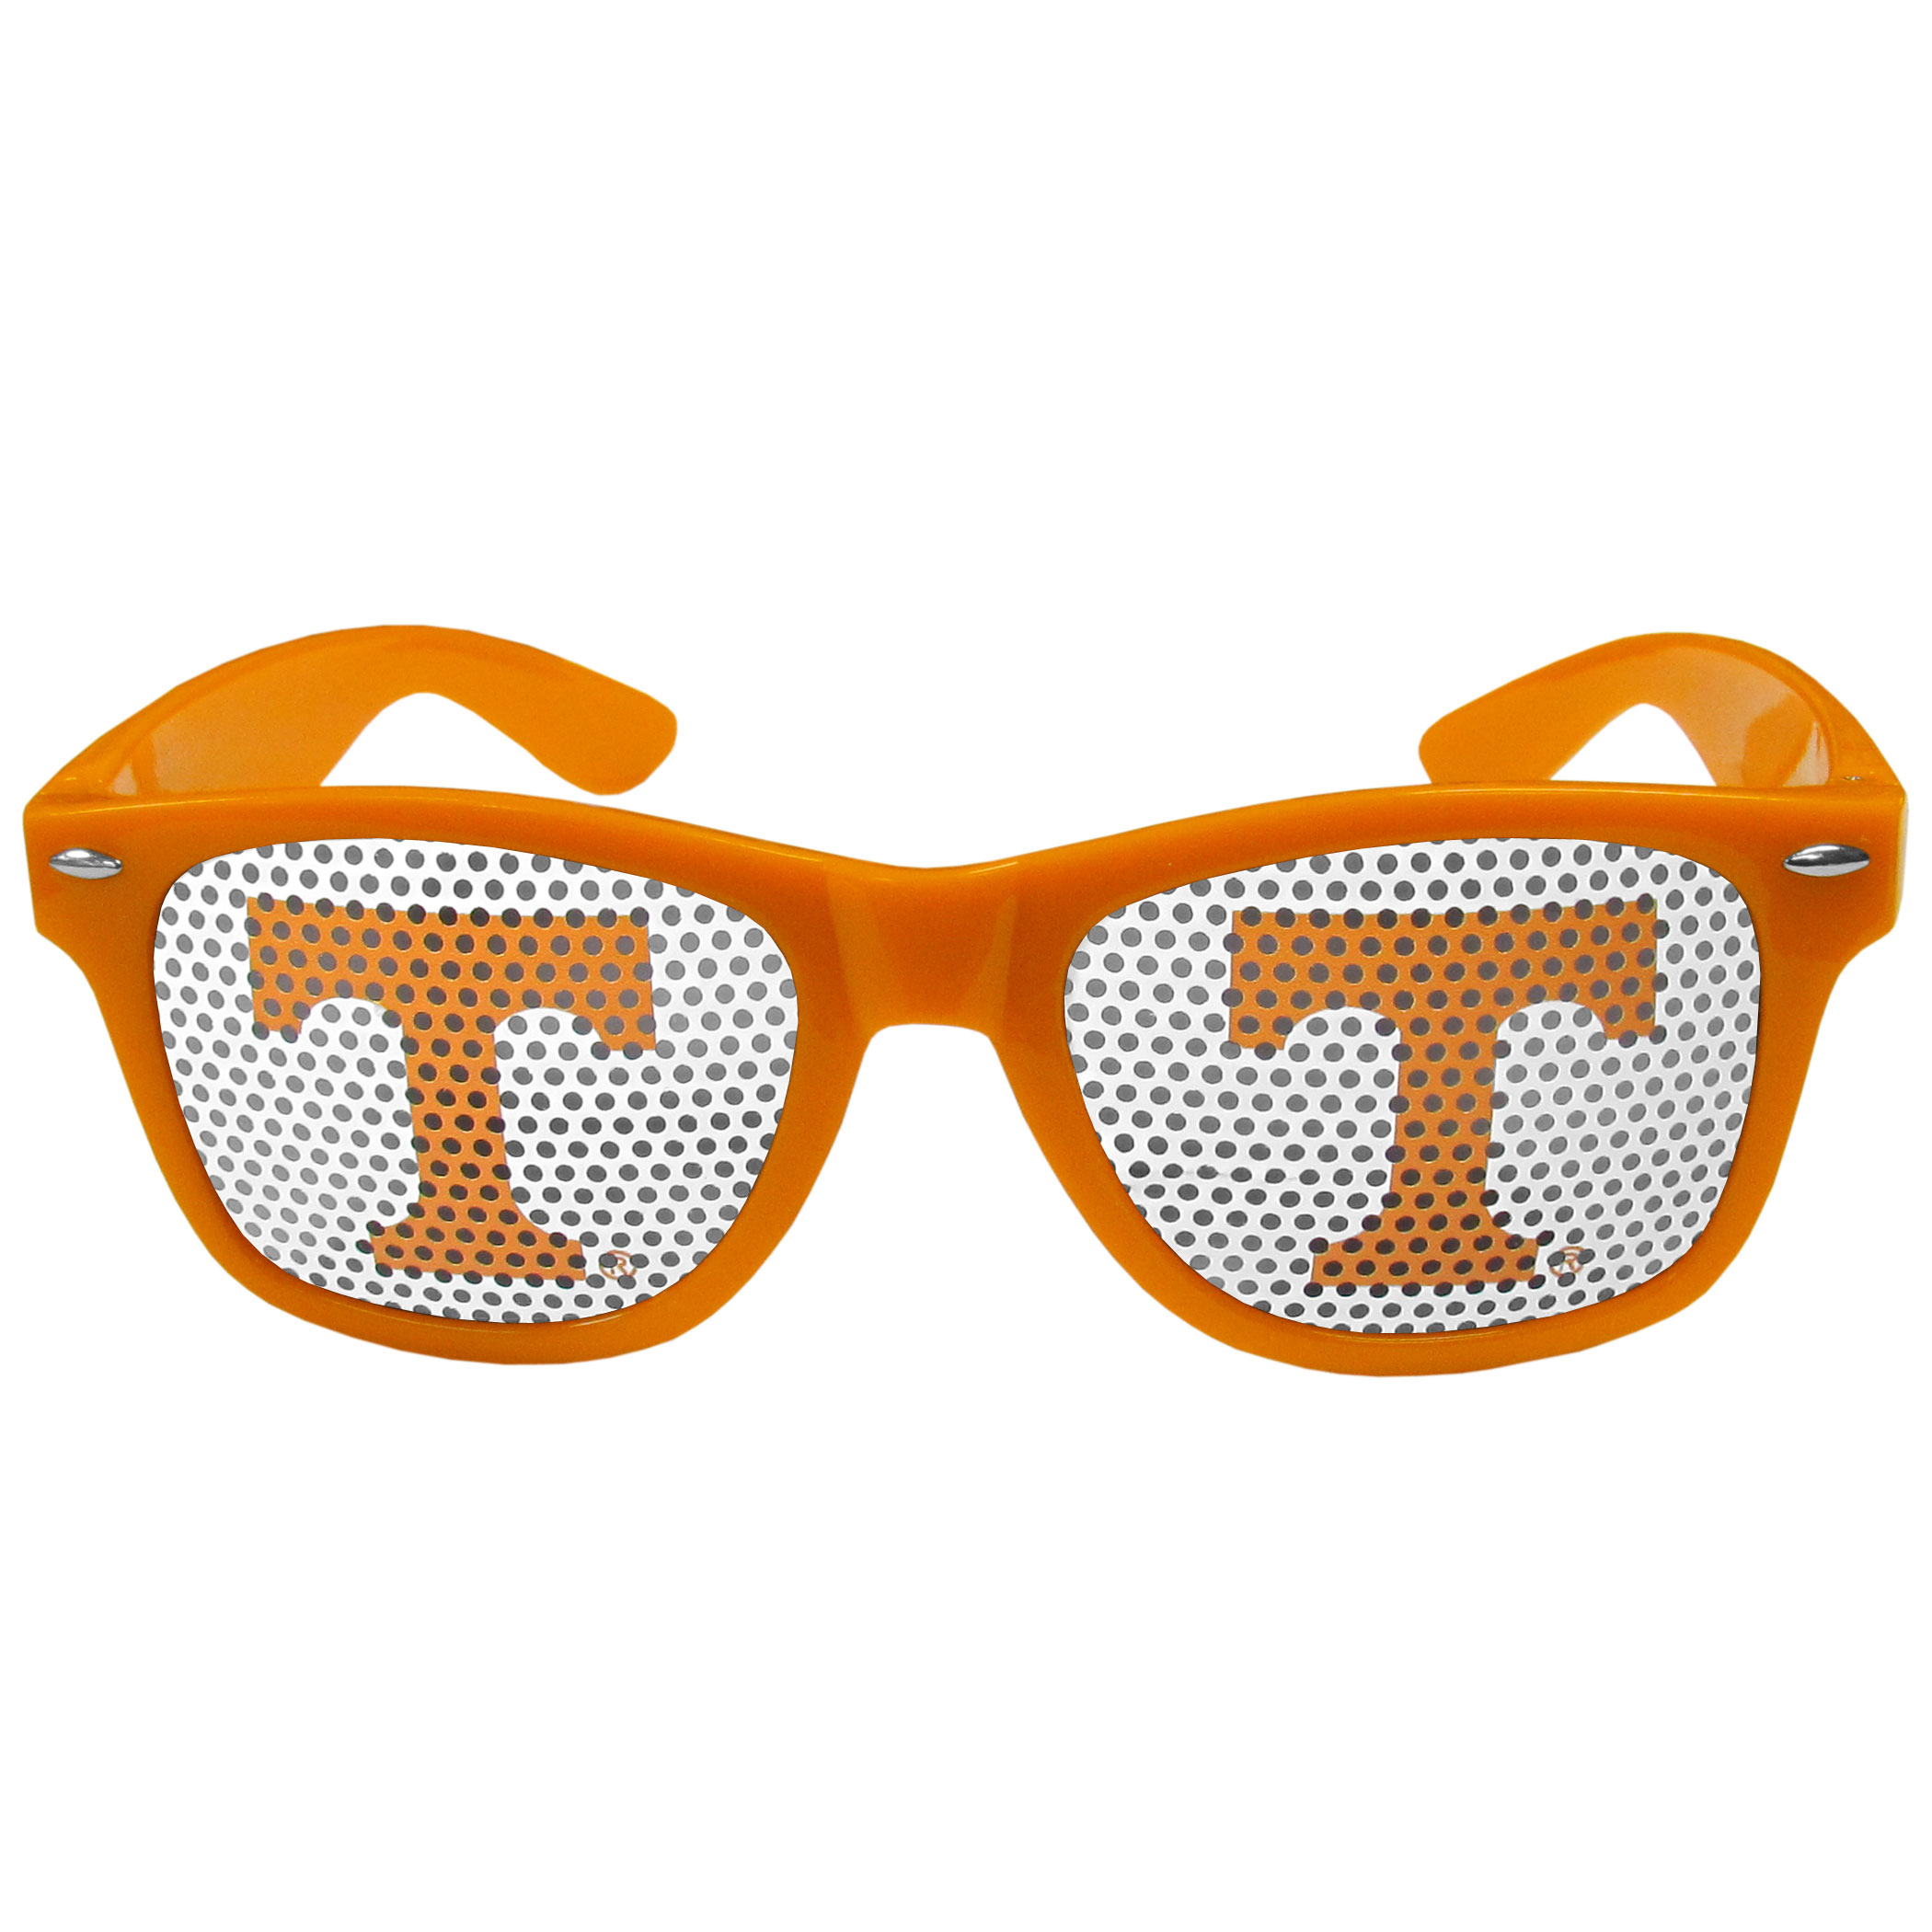 Tennessee Volunteers Game Day Shades - Our officially licensed game day shades are the perfect accessory for the devoted Tennessee Volunteers fan! The sunglasses have durable polycarbonate frames with flex hinges for comfort and damage resistance. The lenses feature brightly colored team clings that are perforated for visibility.